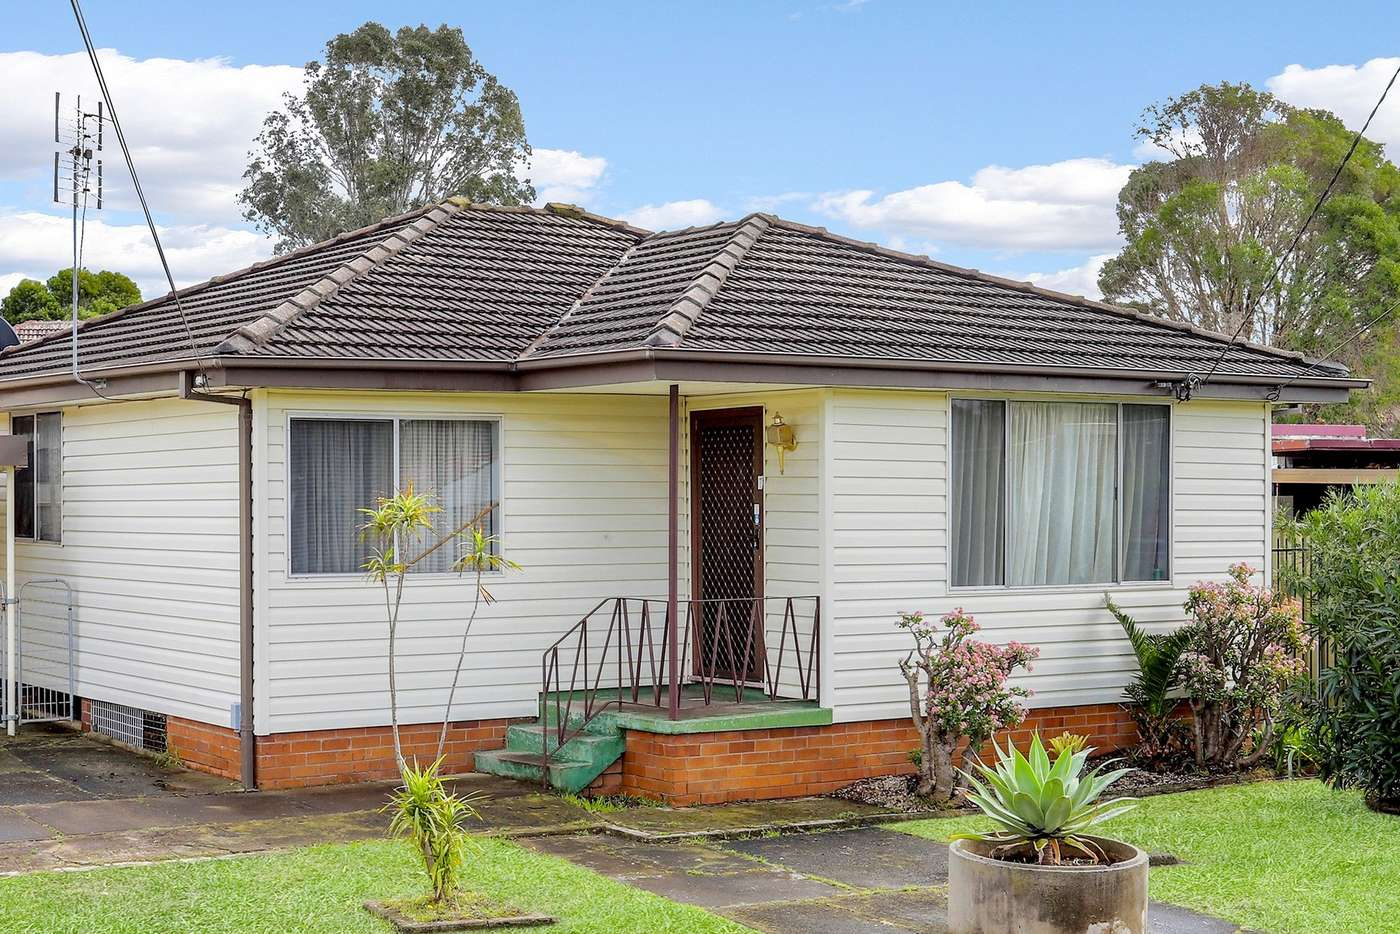 Main view of Homely house listing, 3 Byrne Boulevard, Marayong NSW 2148